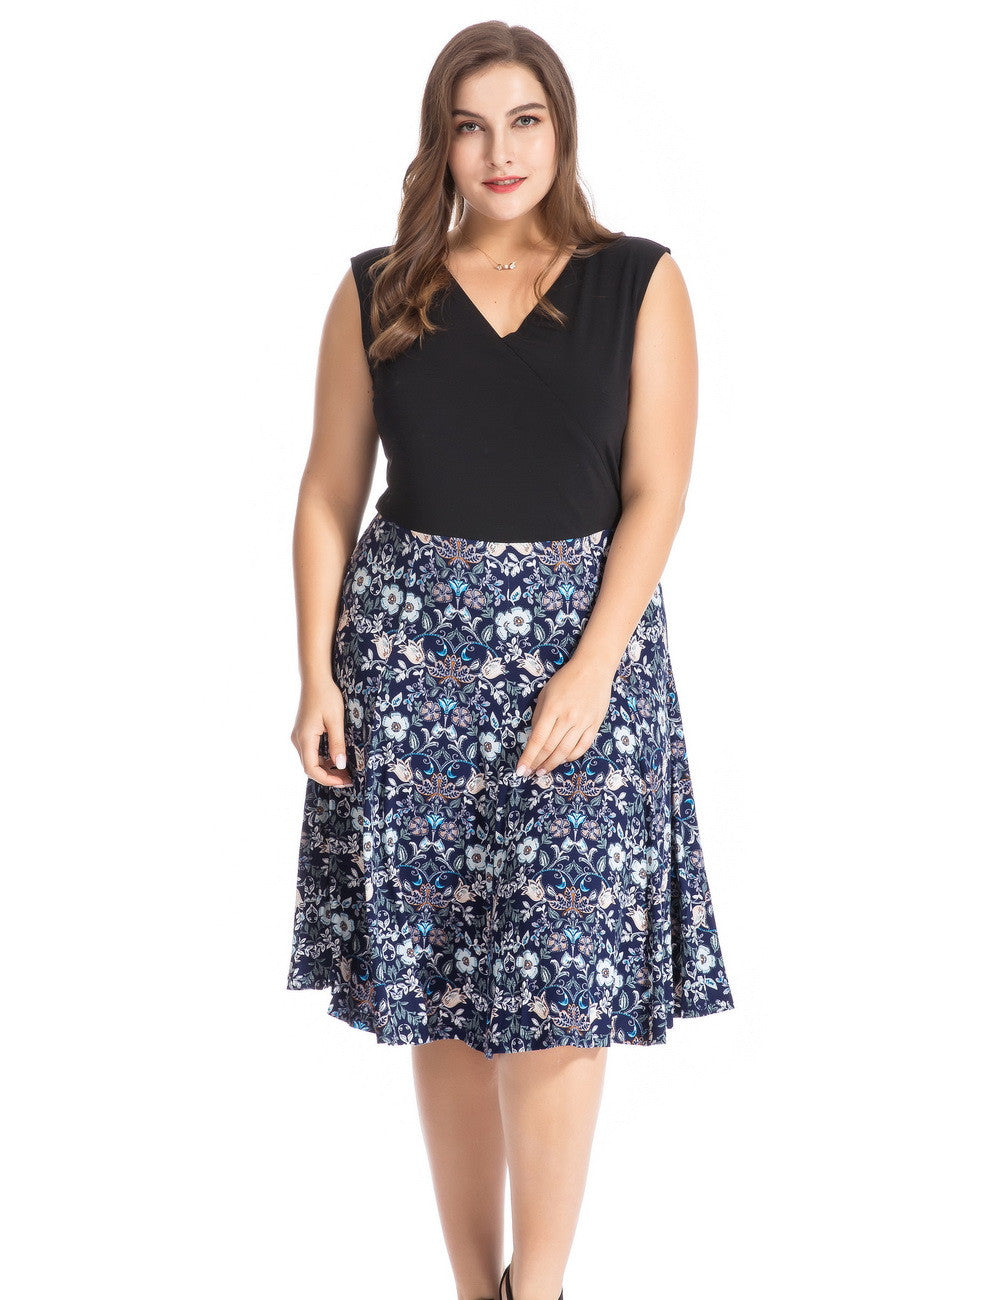 Chicwe Women's Plus Size Floral Printed Skater Dress 1X-4X